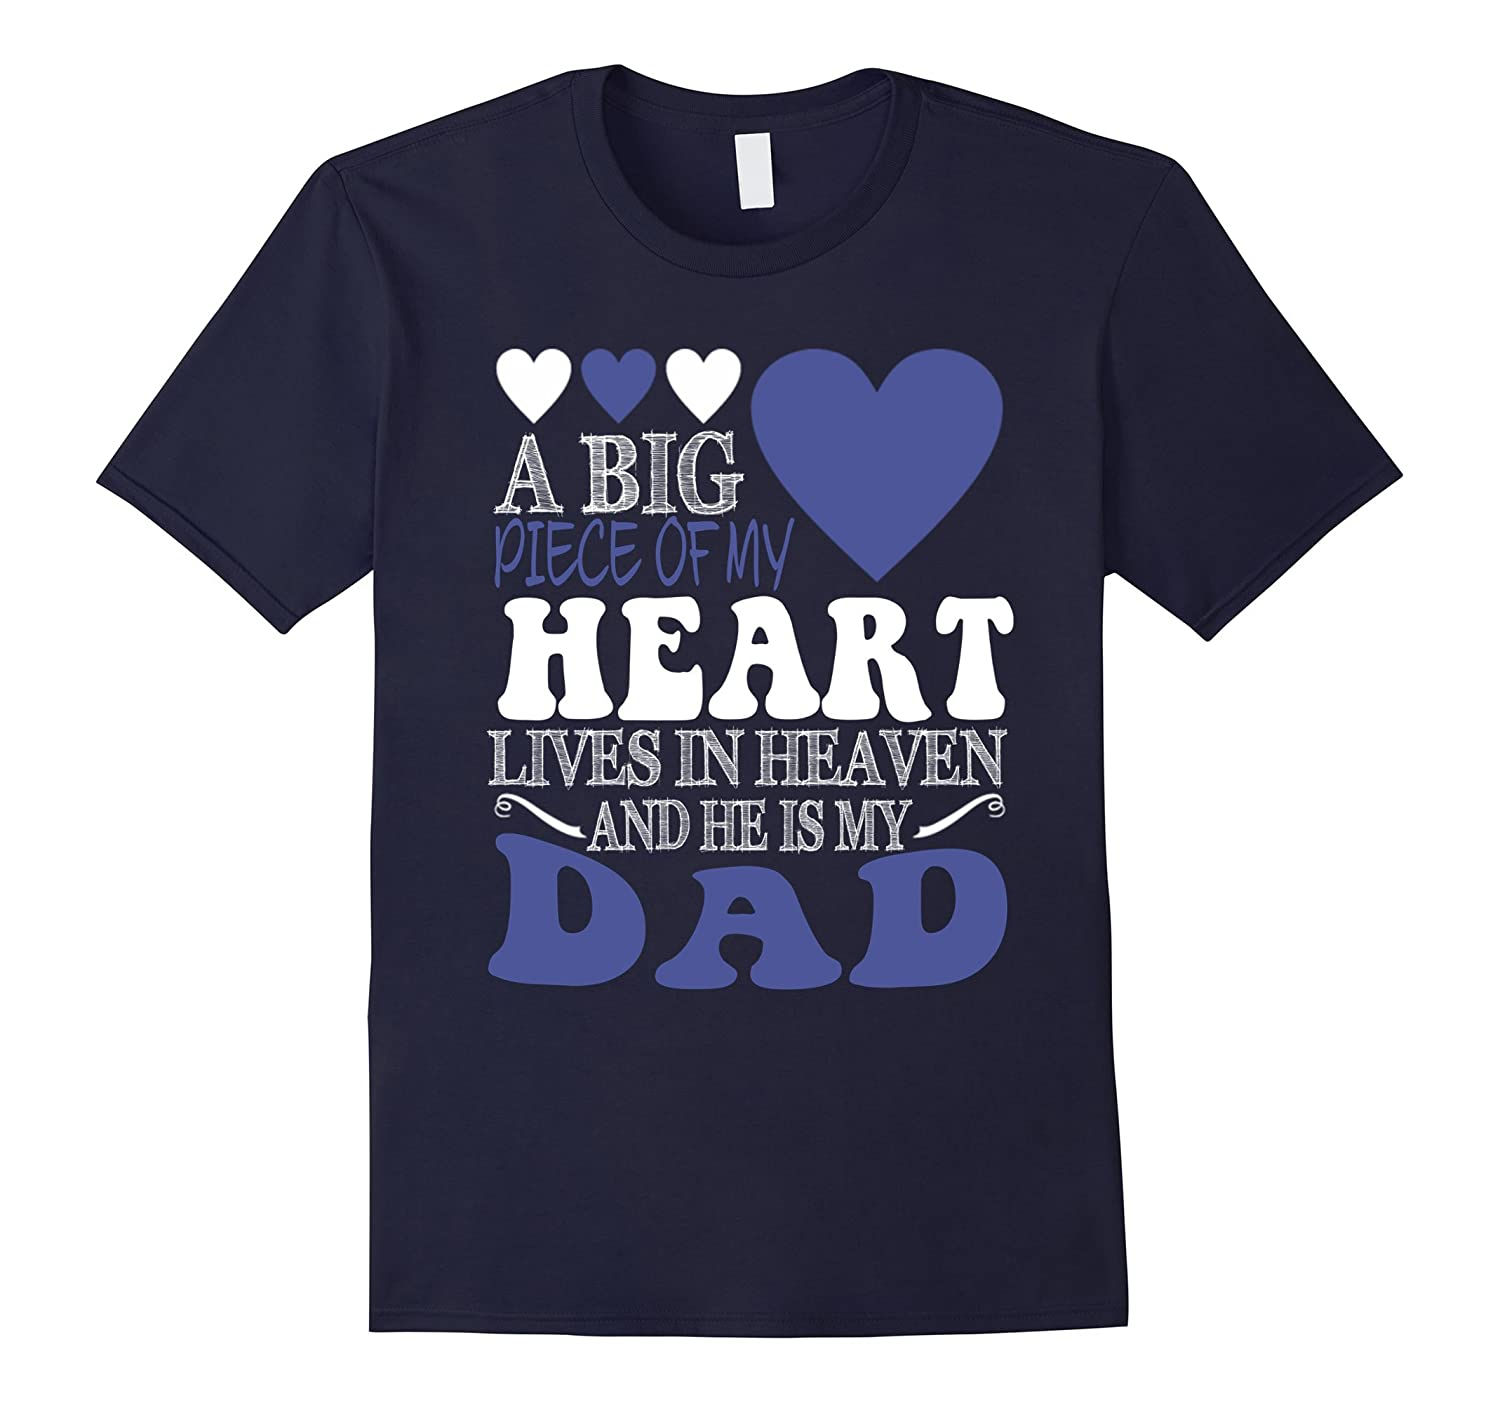 A BIG HEART LIVES IN HEAVEN AND HE IS MY DAD T-SHIRTS-CD